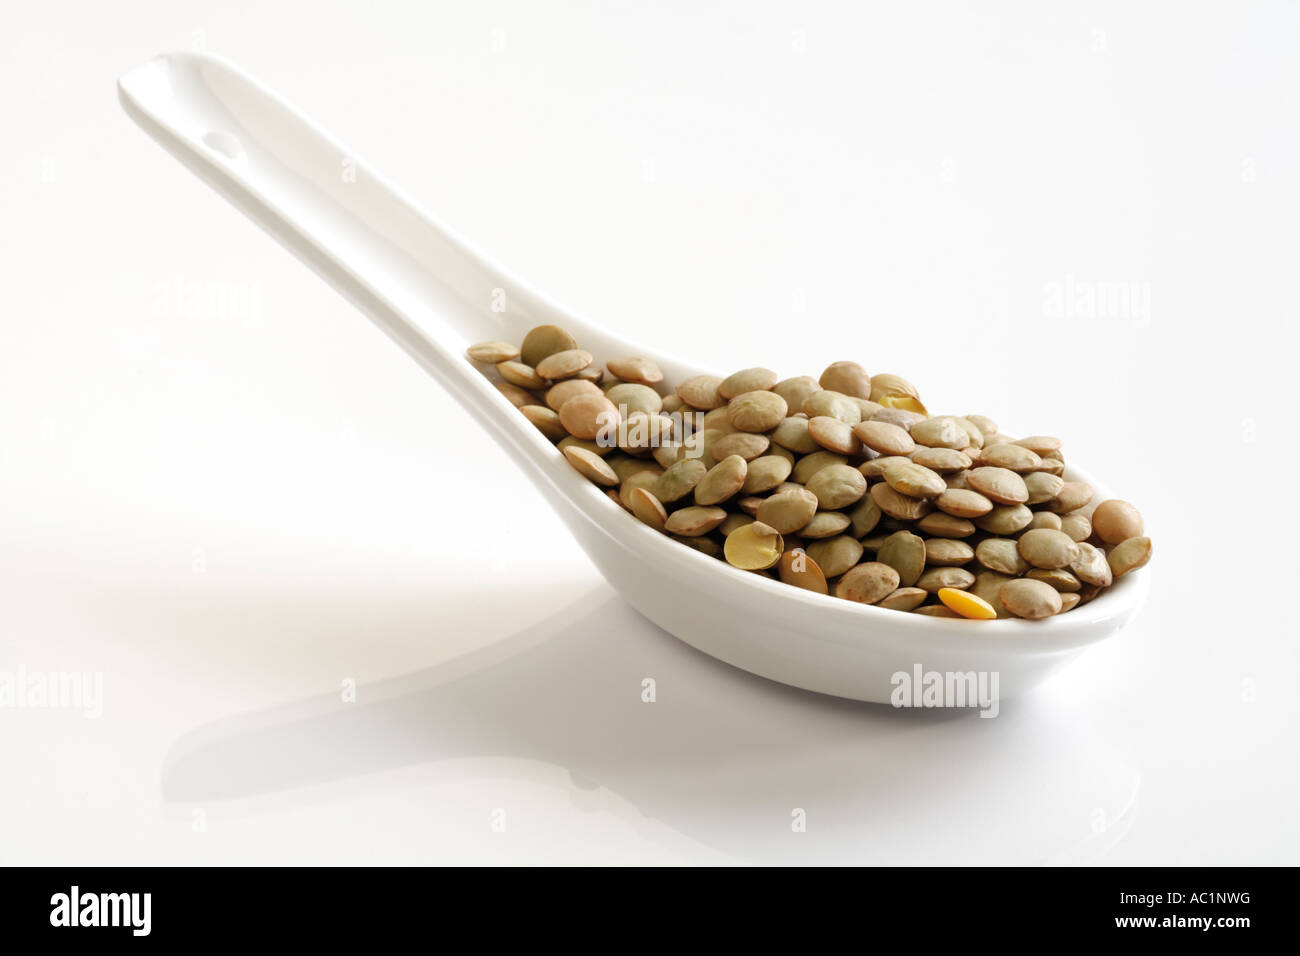 Dried Lentils - Stock Image